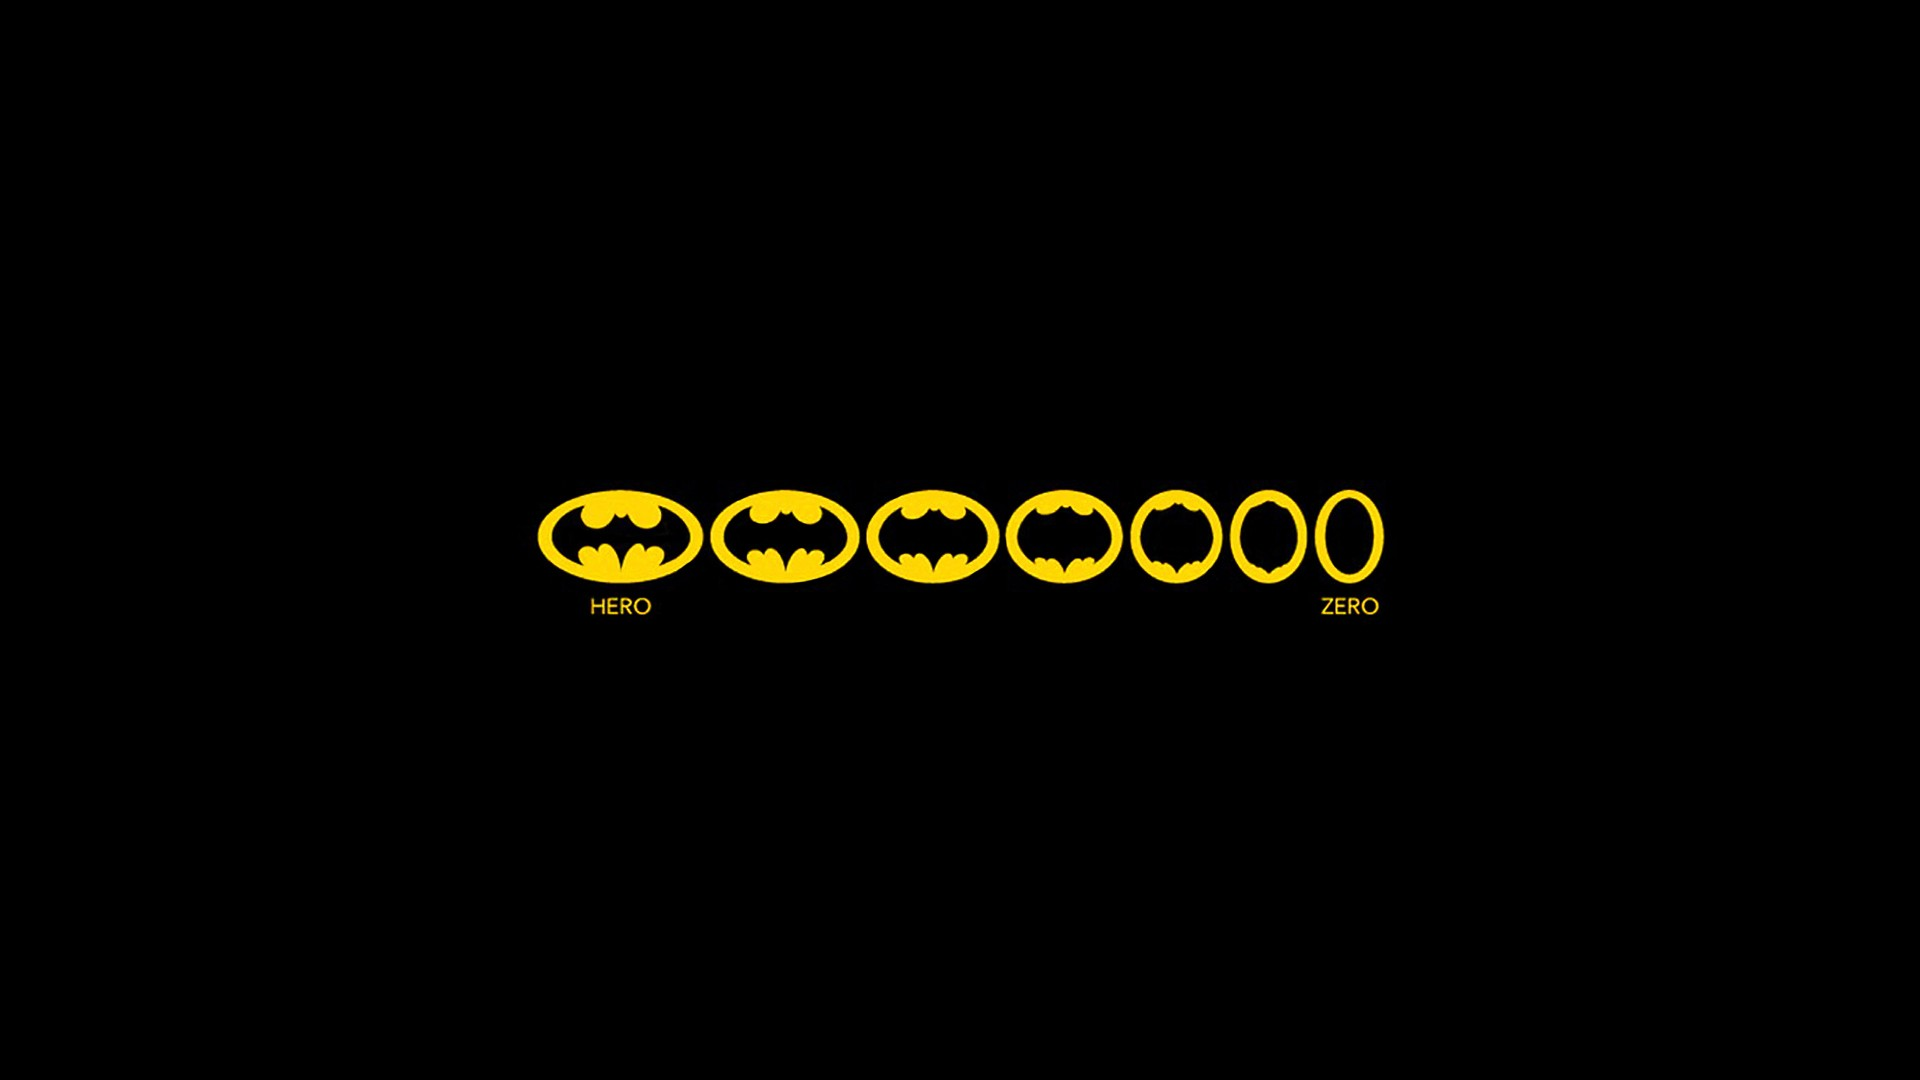 funny cool wallpapers wallpaper hero batman 1920x1080 1920x1080